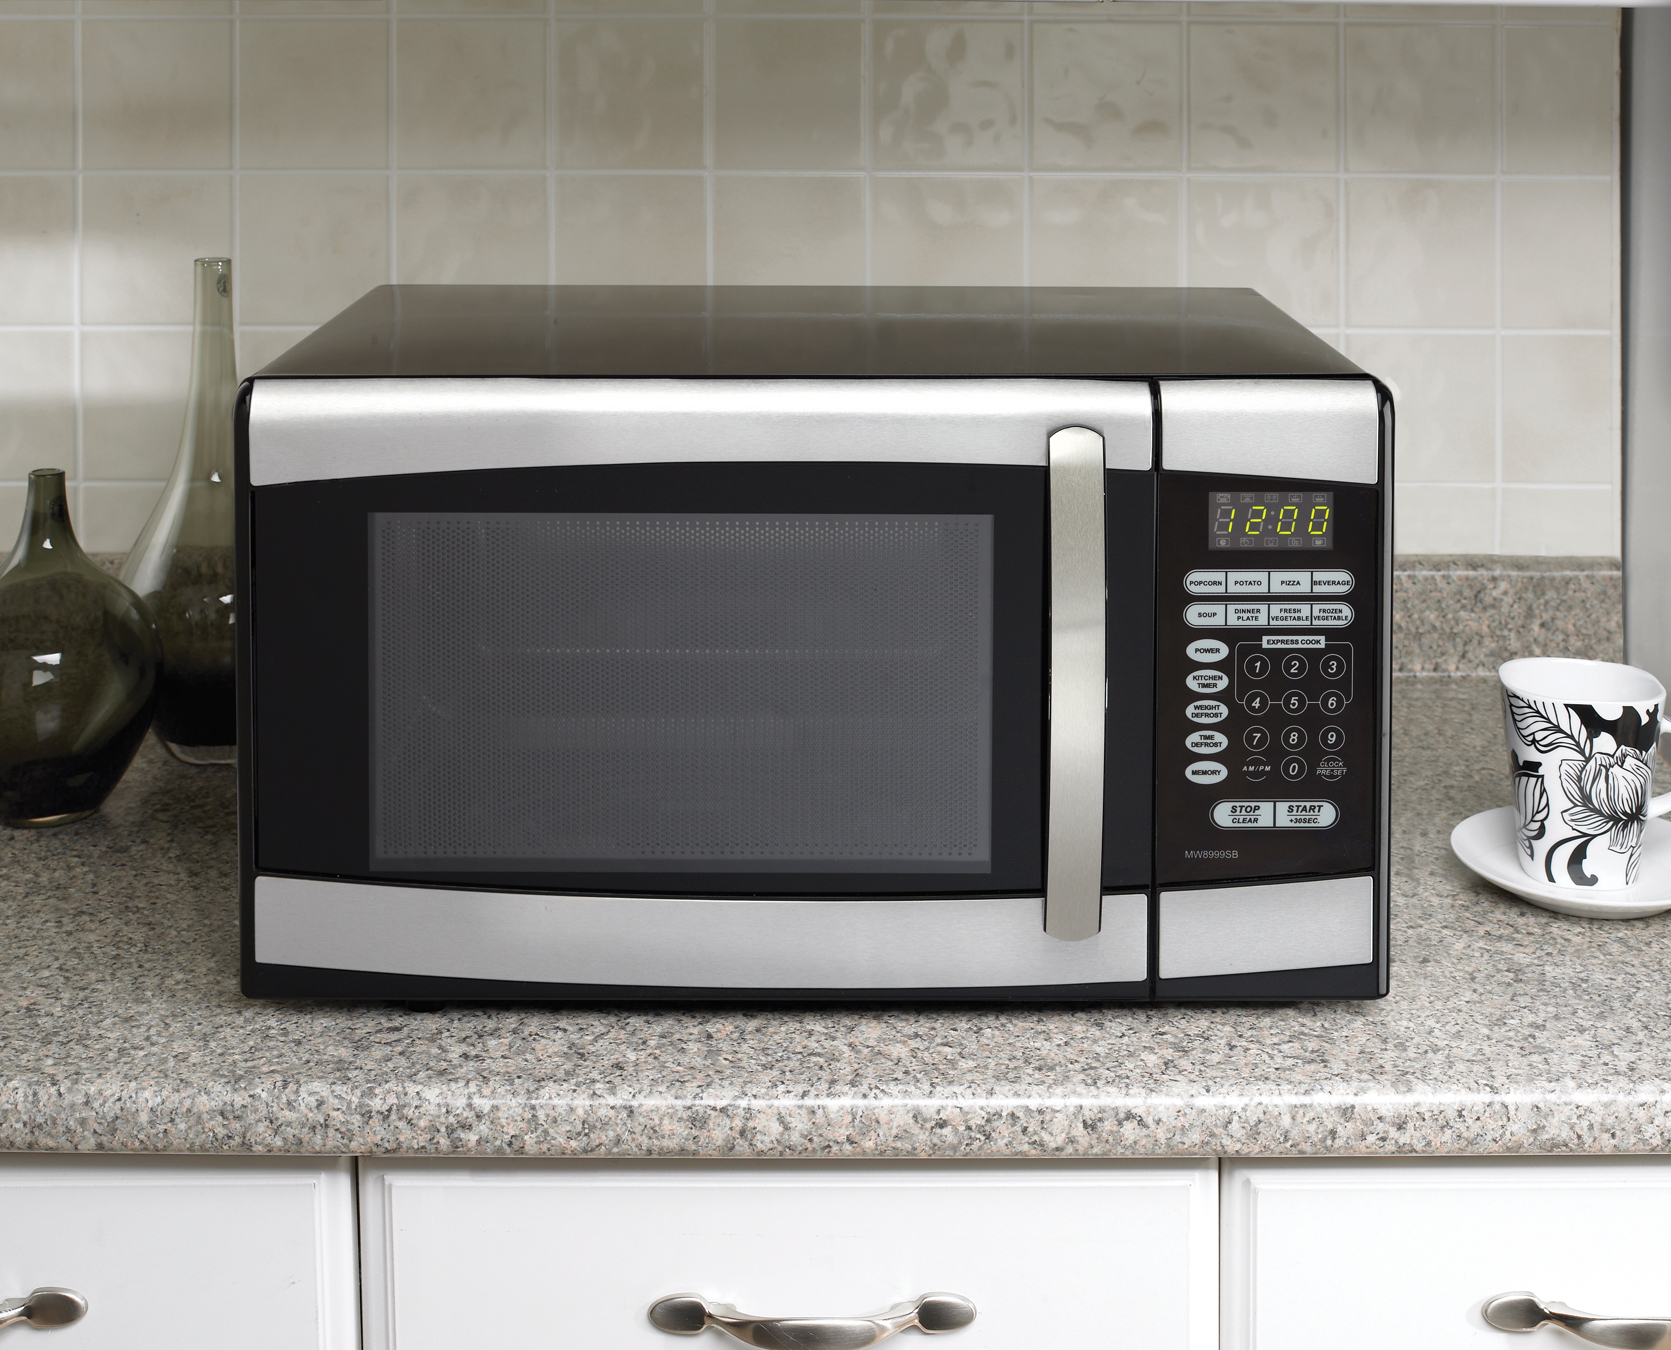 Magic Chef 0.7 Cu Ft Countertop Microwave Danby 9 Cu Ft Microwave Stainless Steel Bestmicrowave